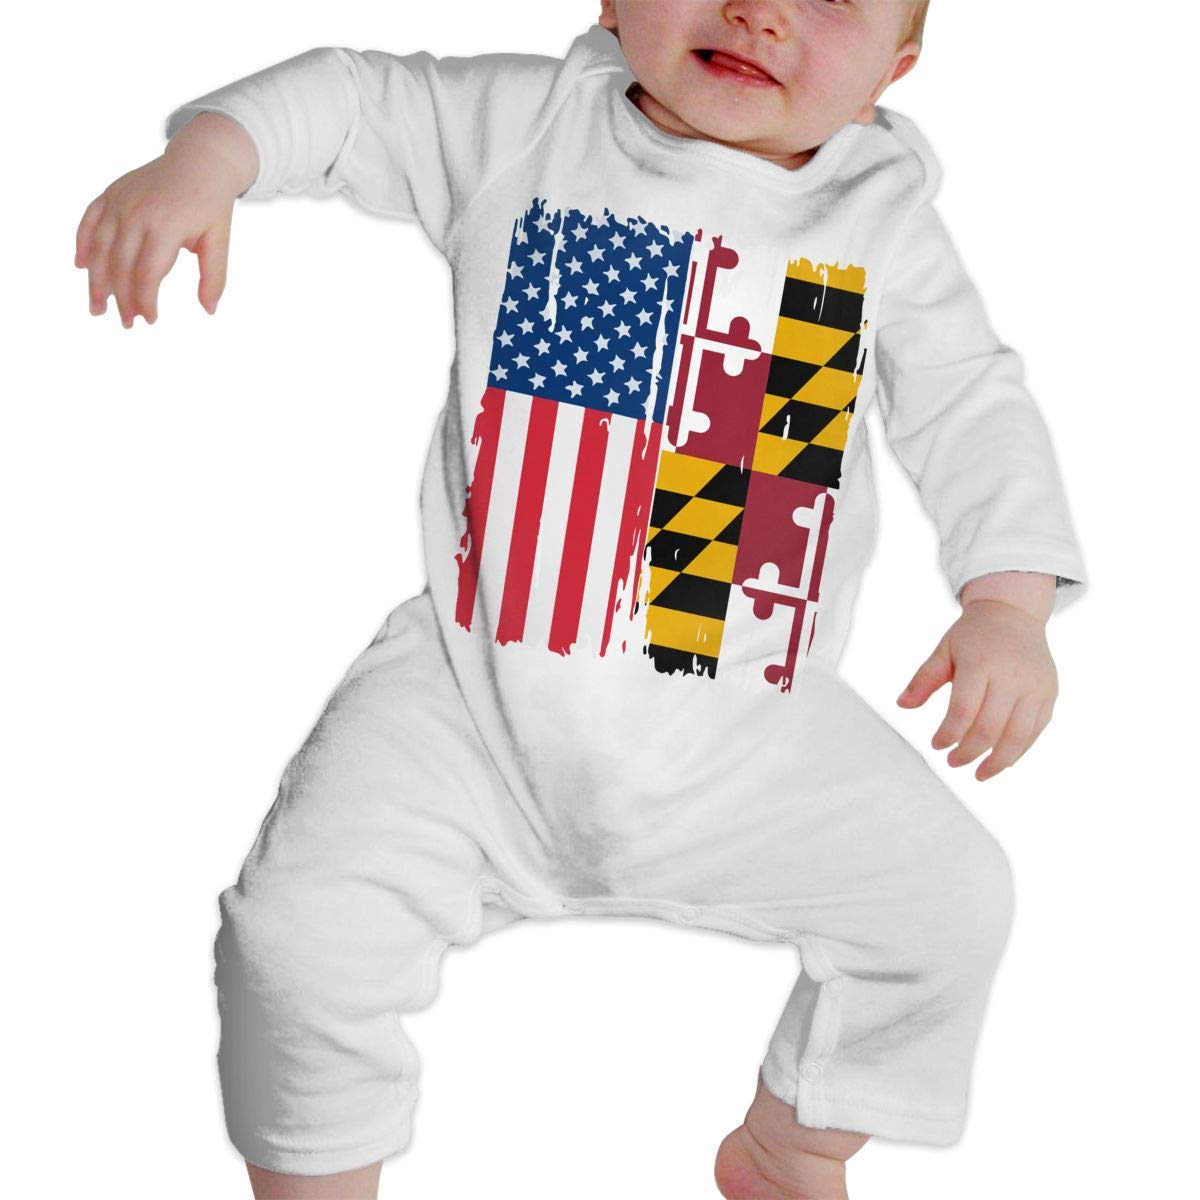 A1BY-5US Newborn Baby Boys Girls Cotton Long Sleeve American Maryland Flag Romper Bodysuit Funny Printed Romper Clothes